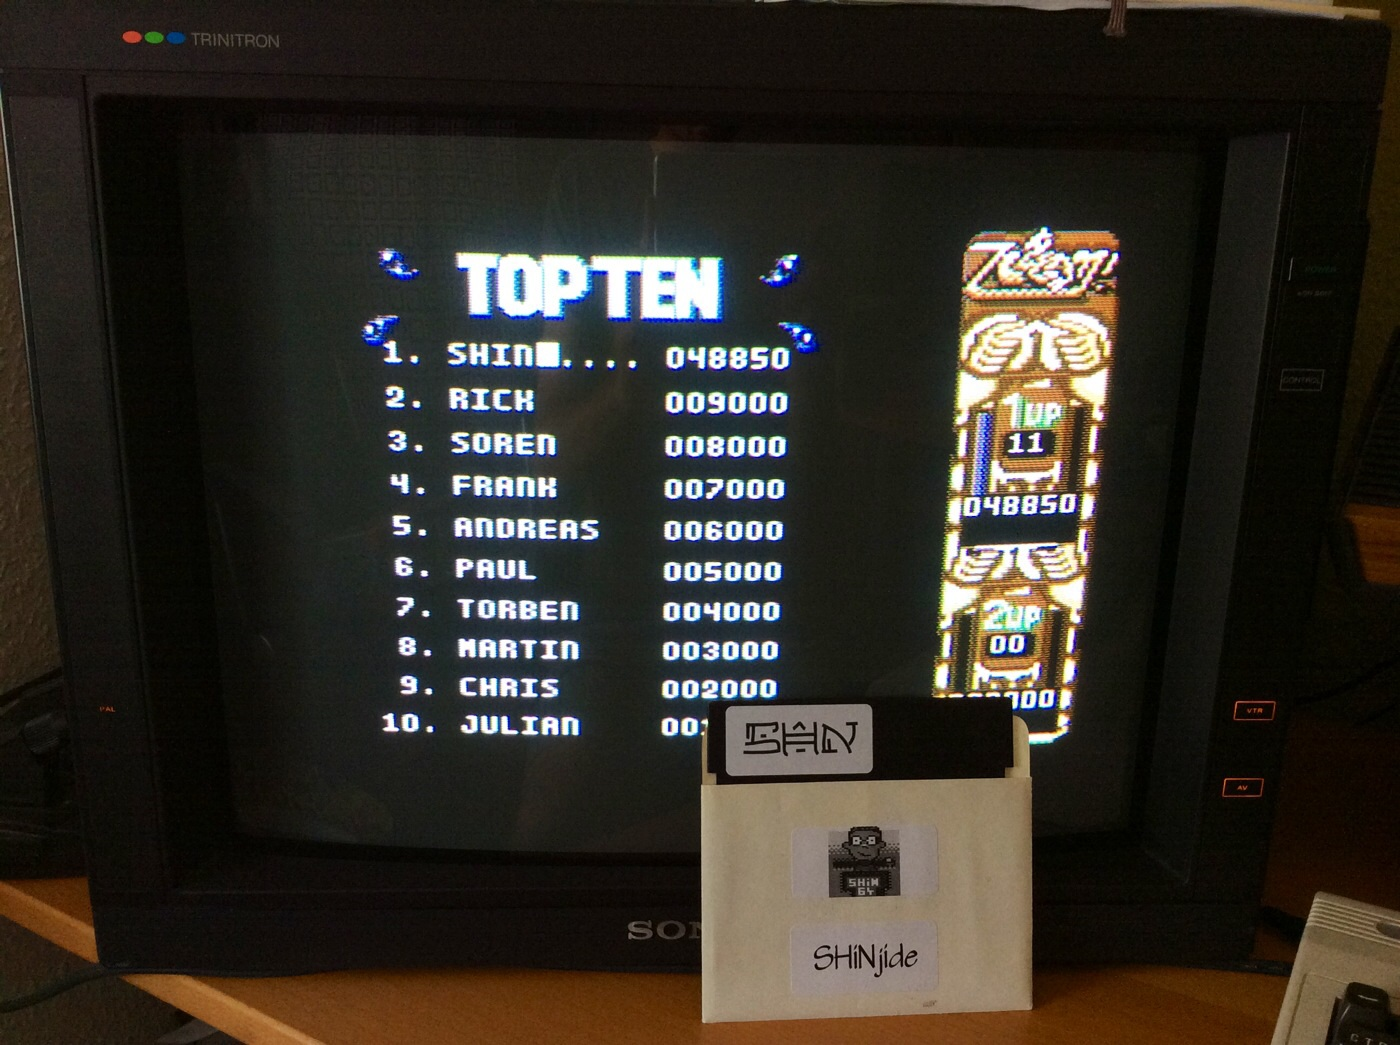 SHiNjide: ZOOM! (Commodore 64) 48,850 points on 2014-07-19 09:15:26